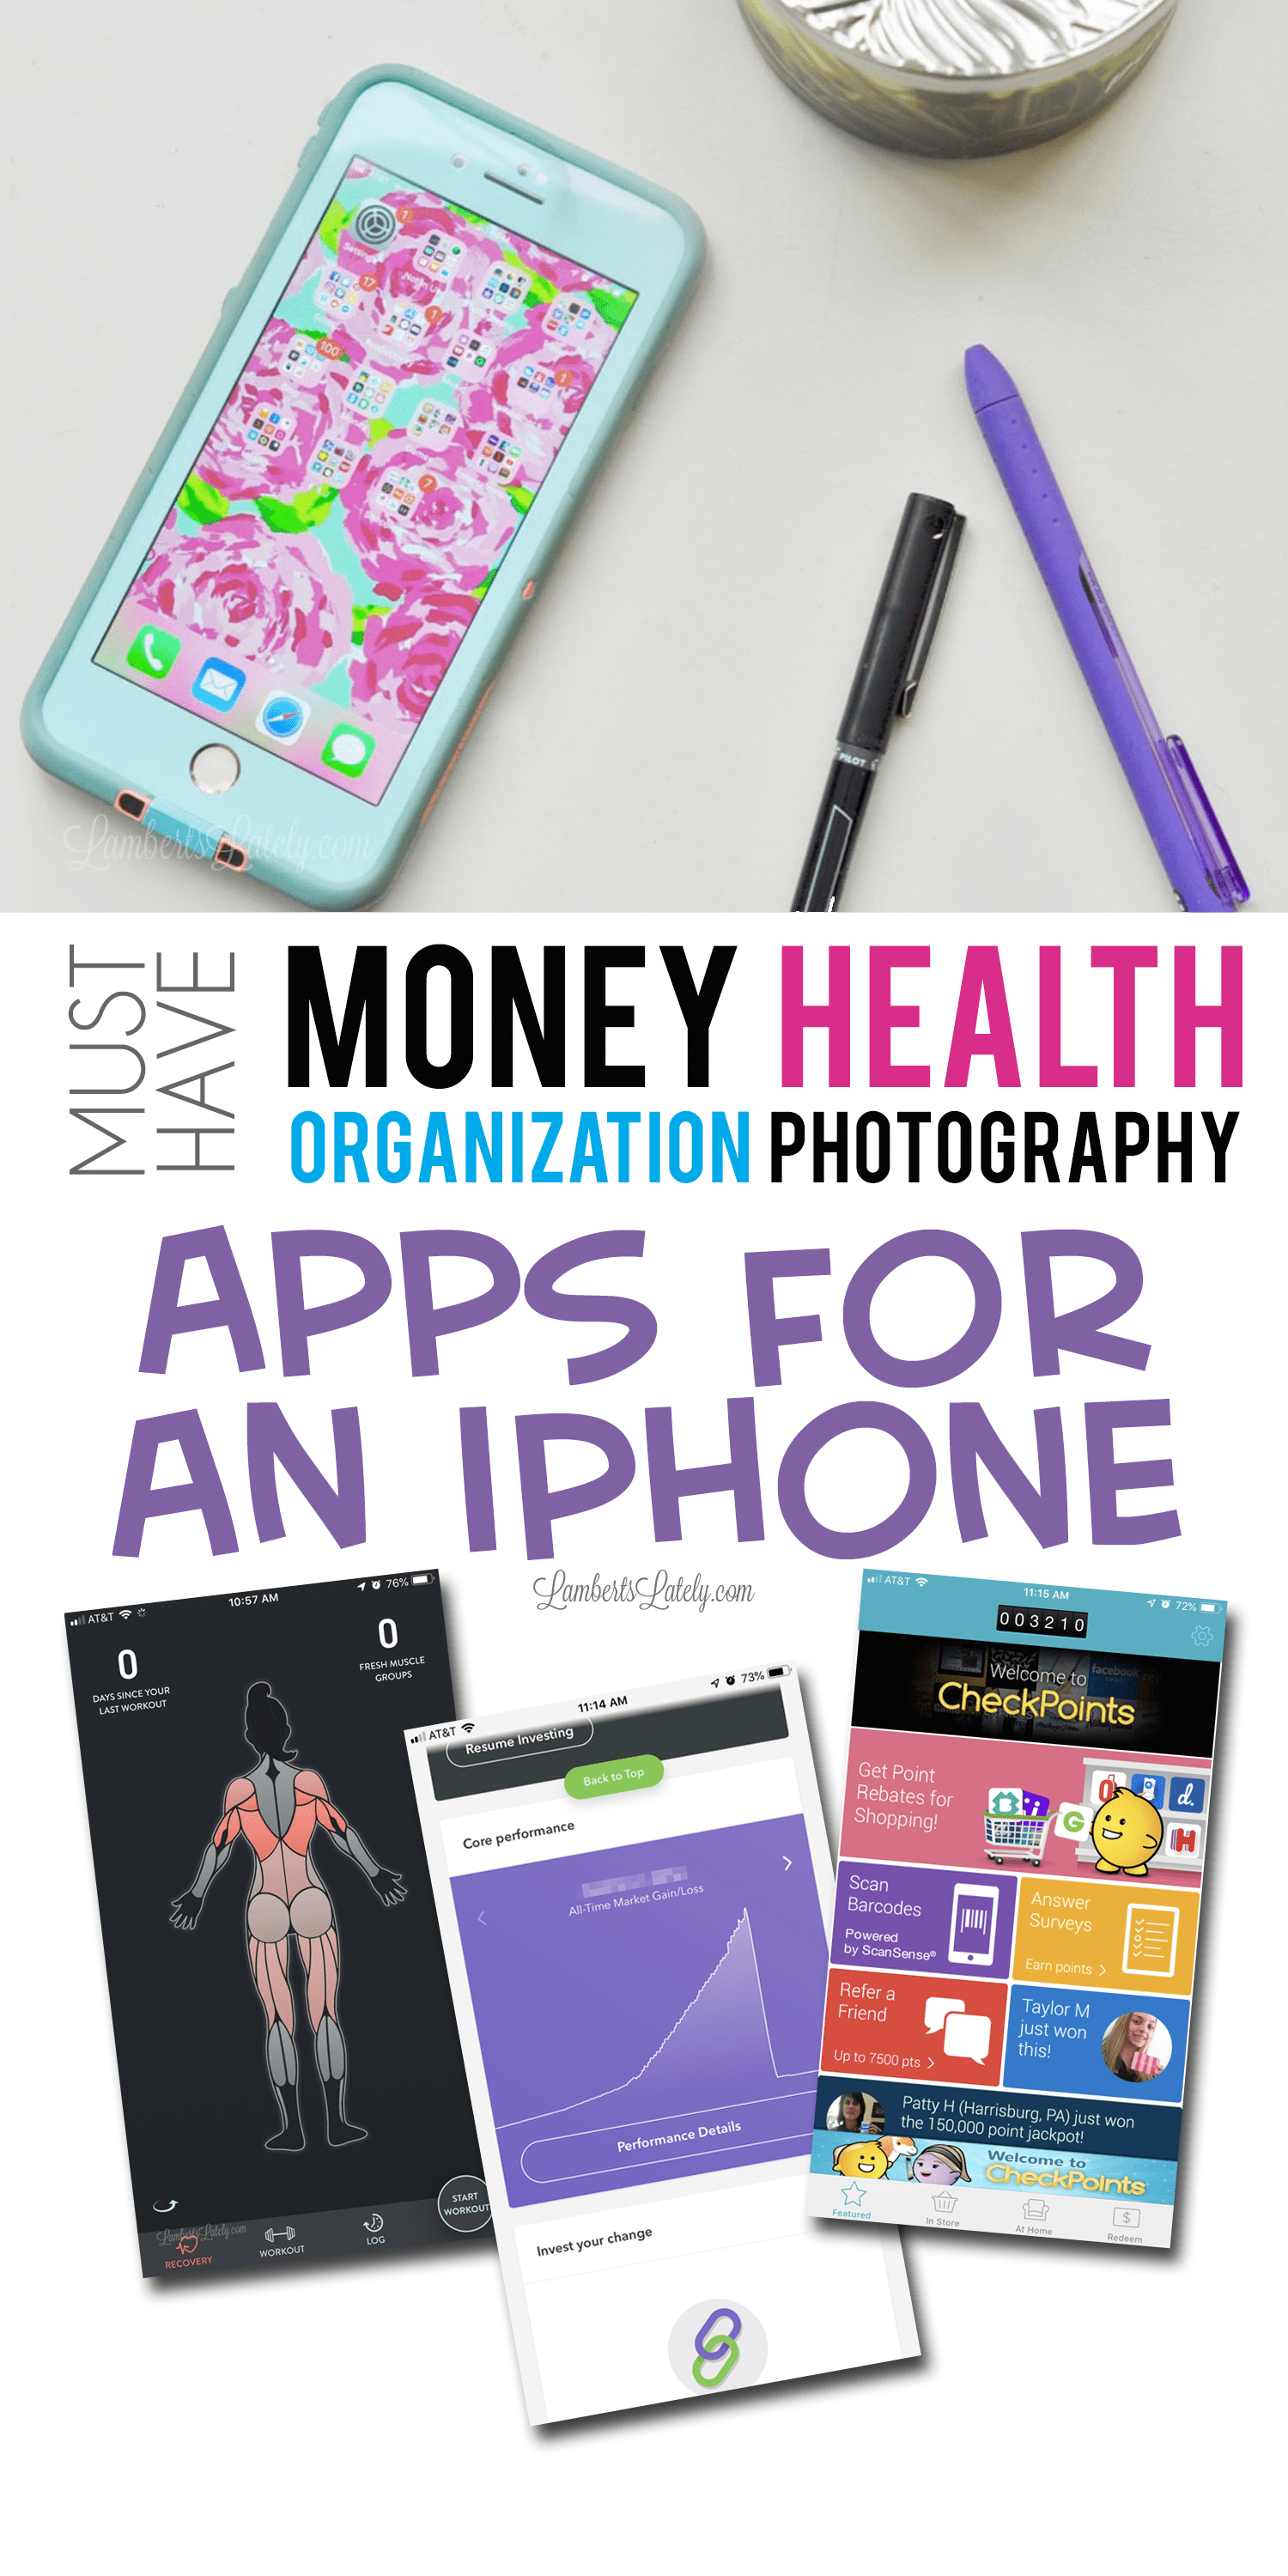 These are the must-have iPhone apps for organization, productivity, money management, health, and photography.  There are even apps that pay you! Find ideas and inspiration for how to organize your life with your smartphone.